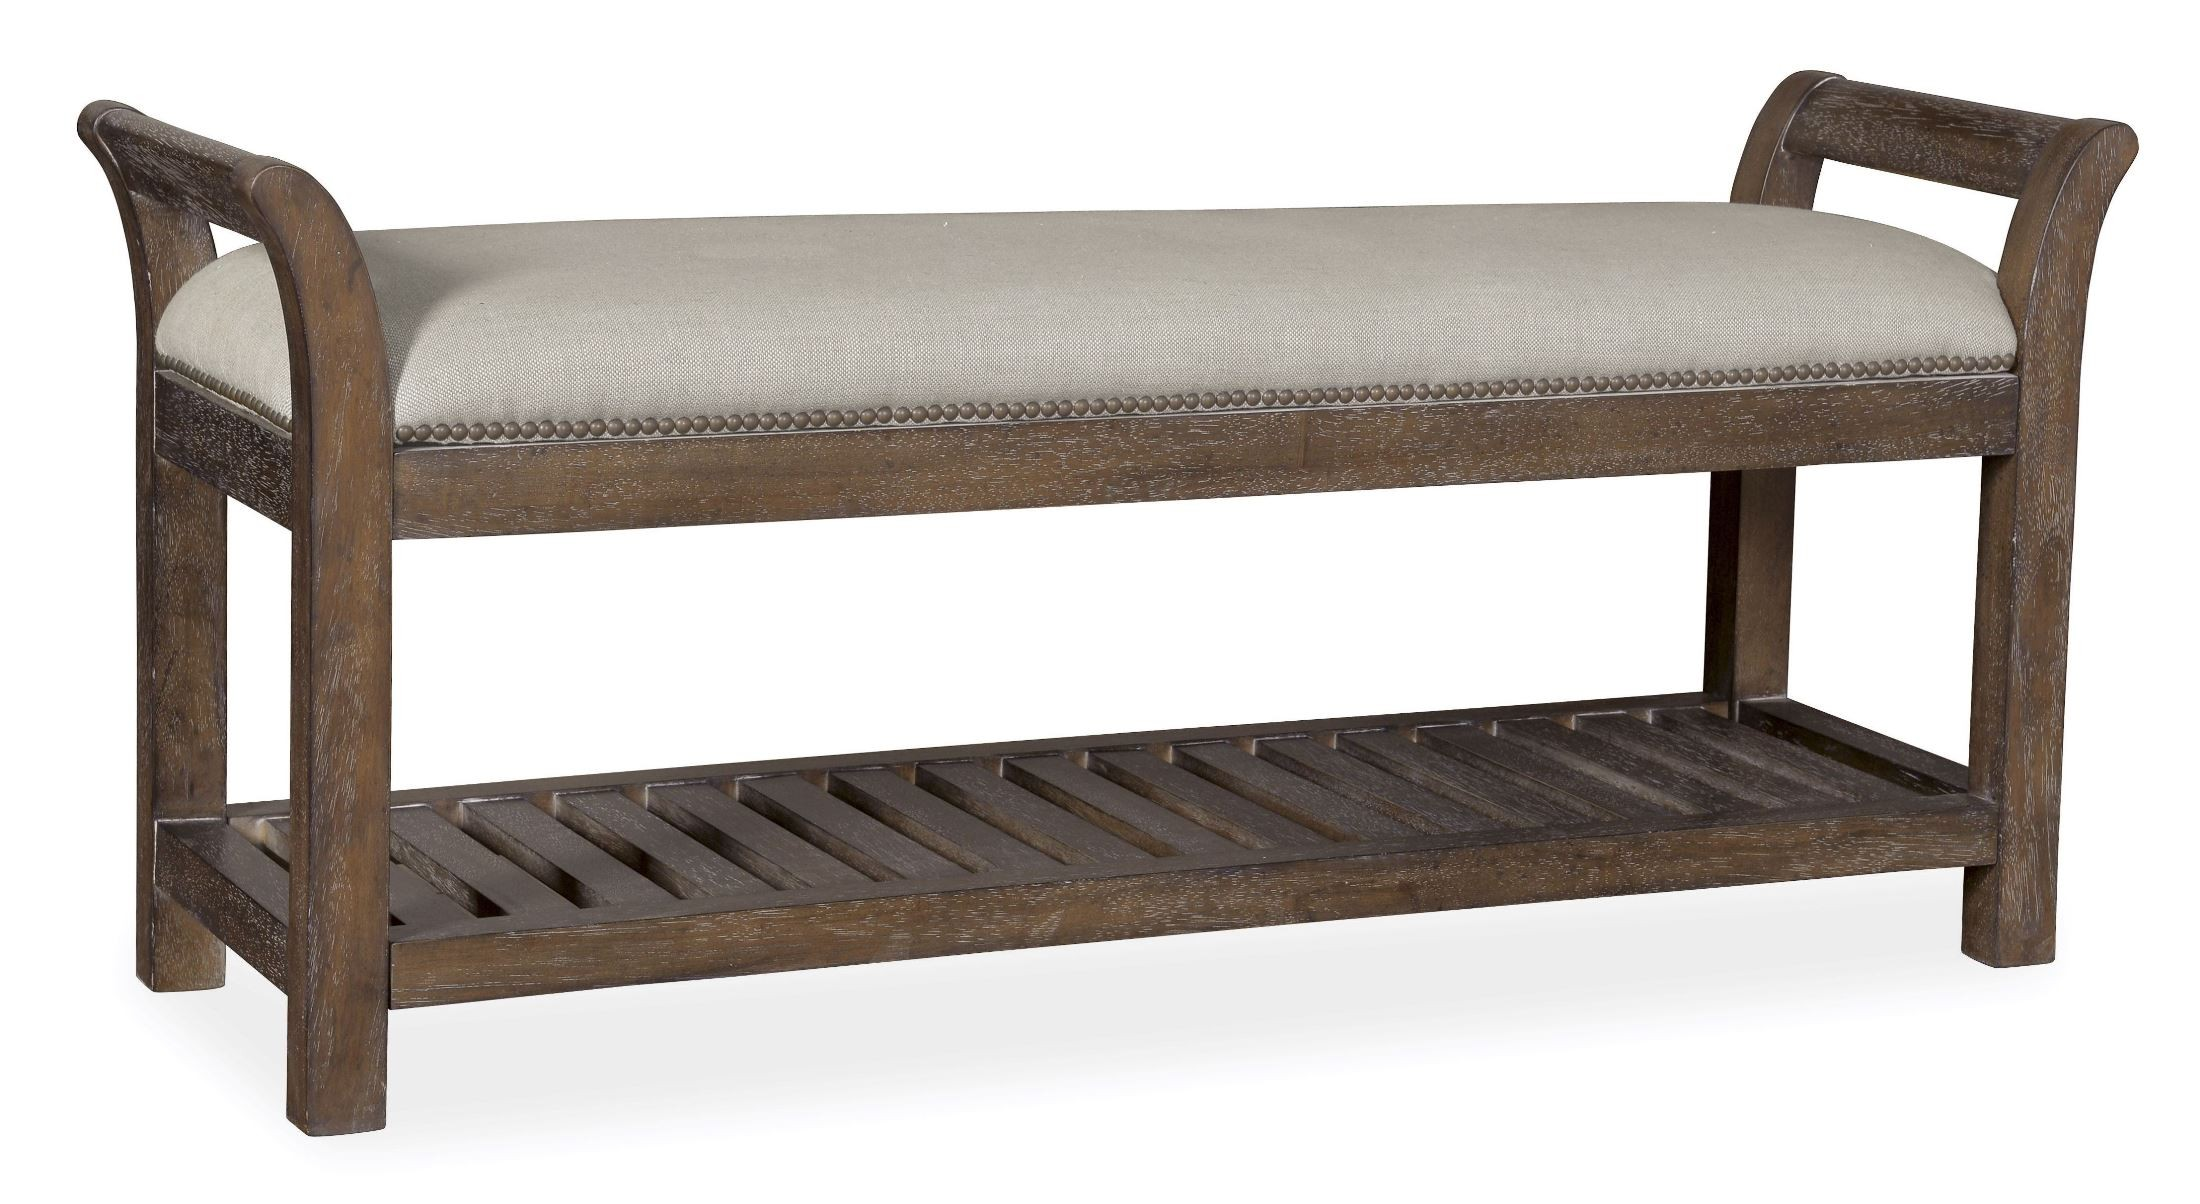 St Germain Bench From Art 215149 1513 Coleman Furniture